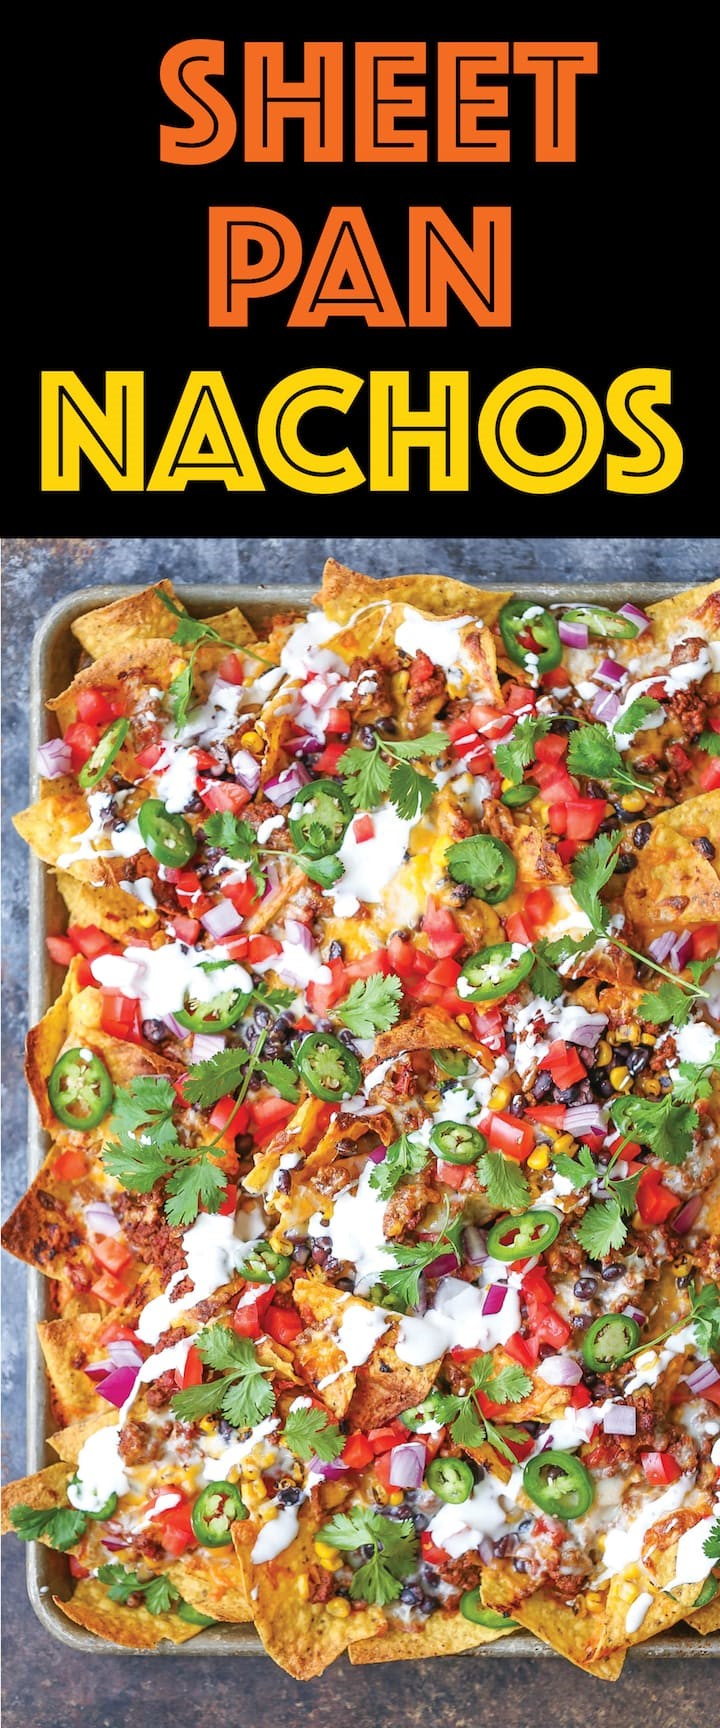 Sheet Pan Nachos from Damn Delicious